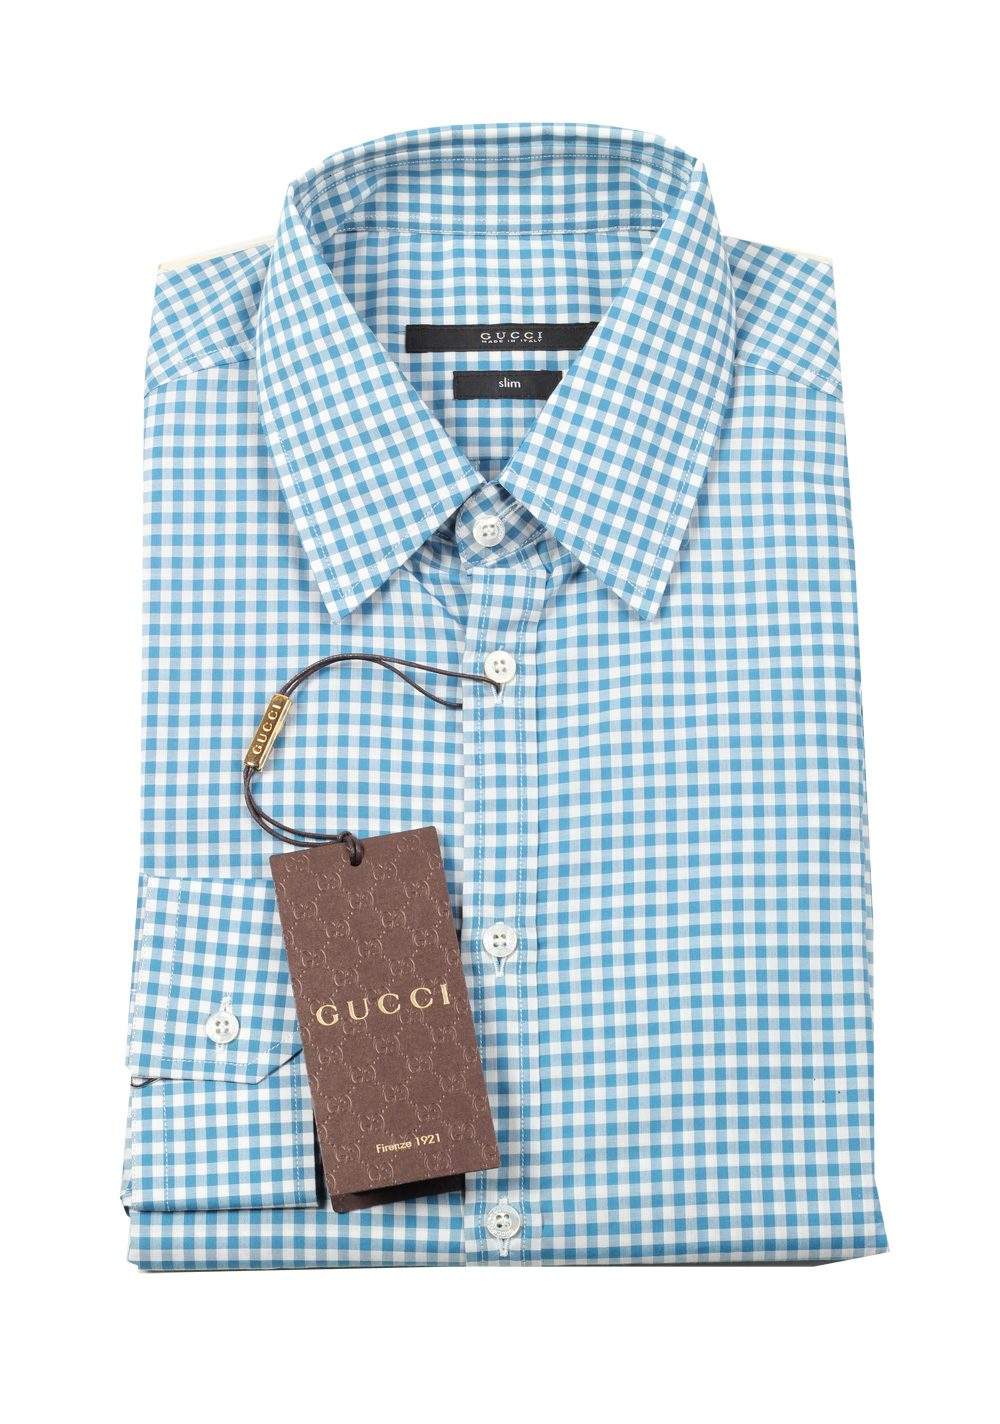 Gucci checked blue dress shirt size 38 15 u s slim for Size 15 dress shirt